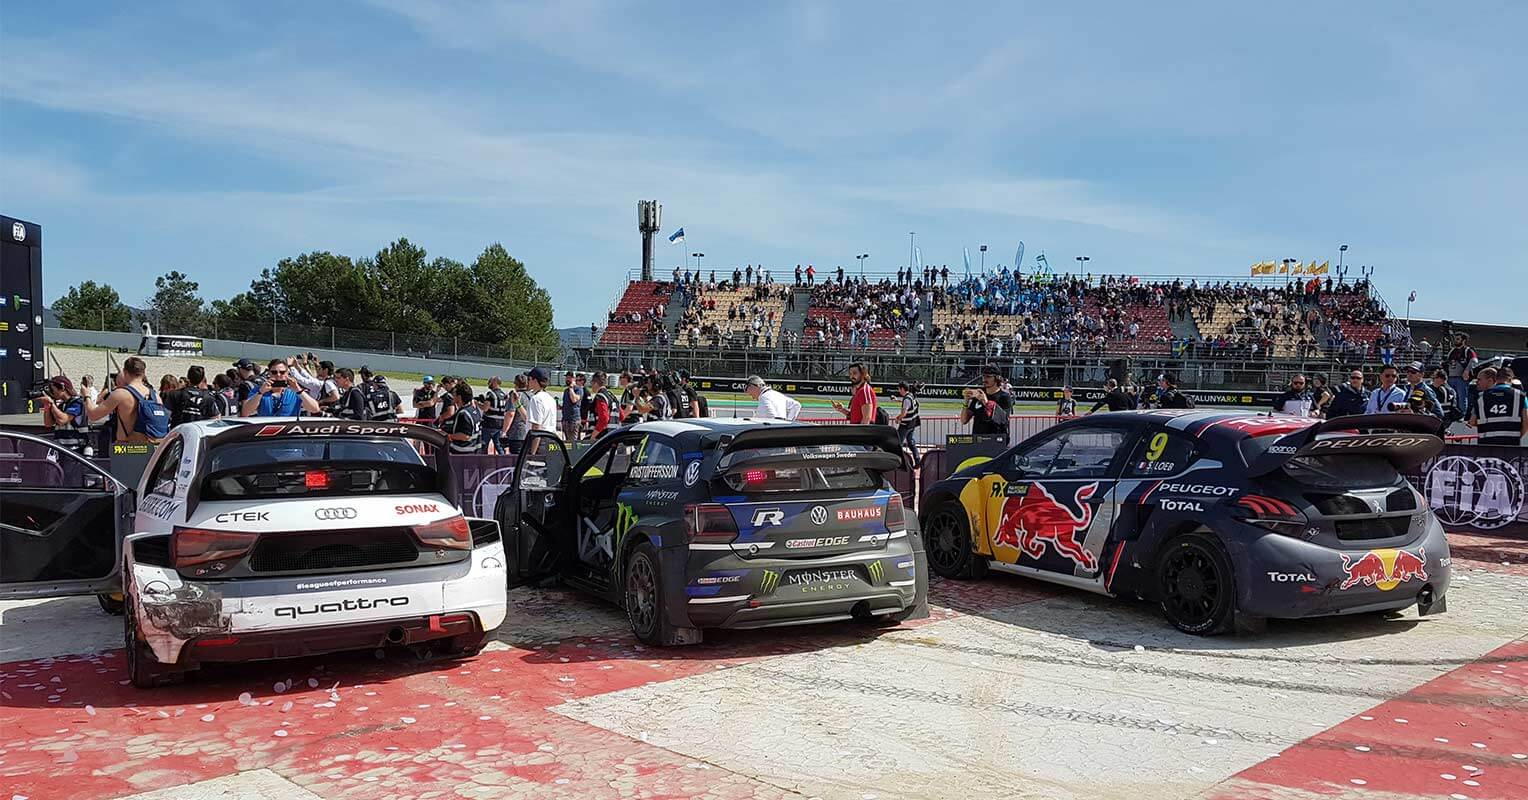 Clasificación final del World RX 2018 Barcelona